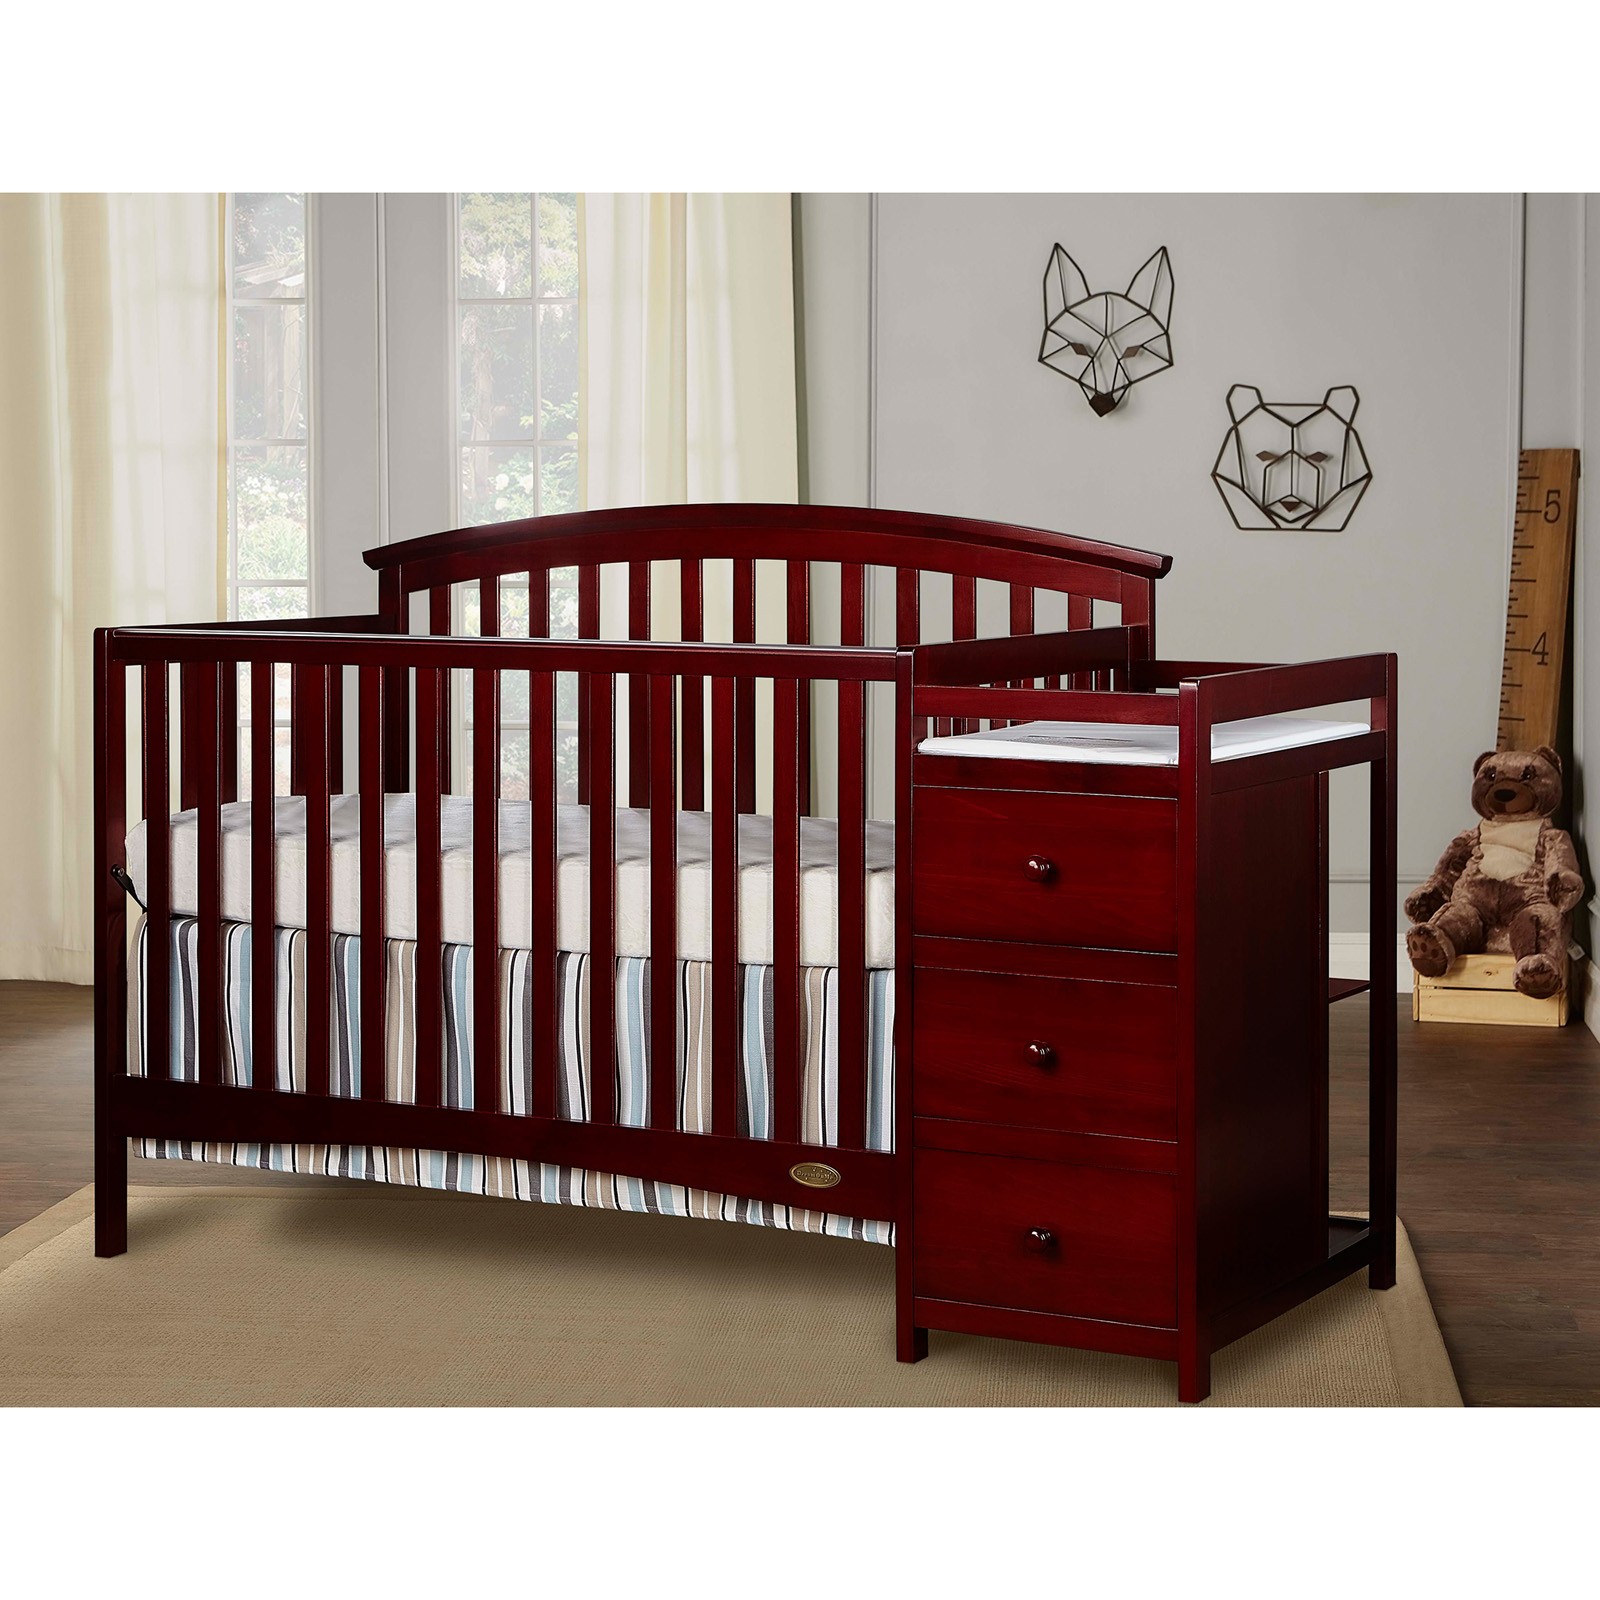 Sorelle Tuscany 4in1 Convertible Crib and Changer Combo Hayneedle